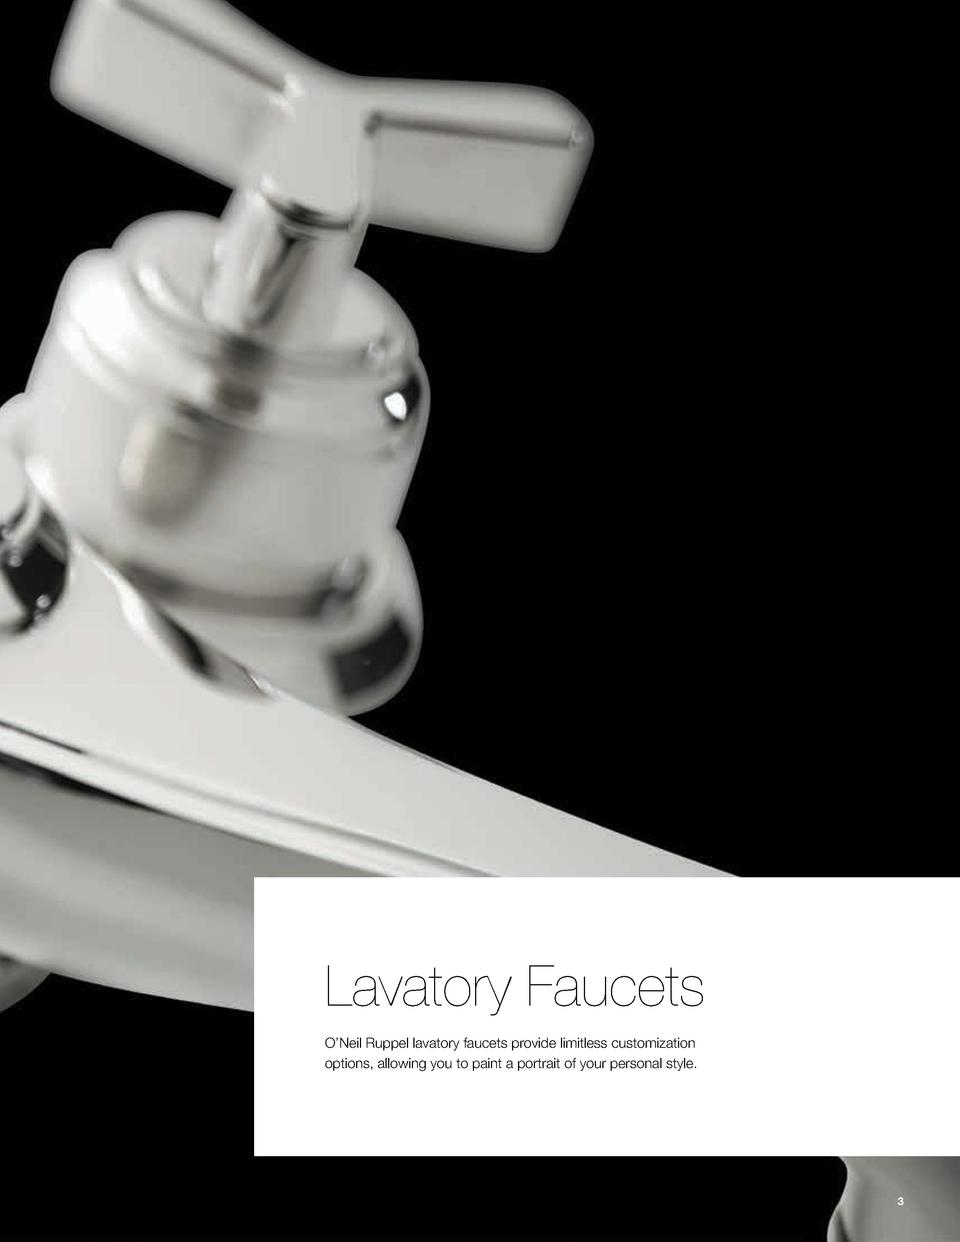 Lavatory Faucets O   Neil Ruppel lavatory faucets provide limitless customization options, allowing you to paint a portrai...